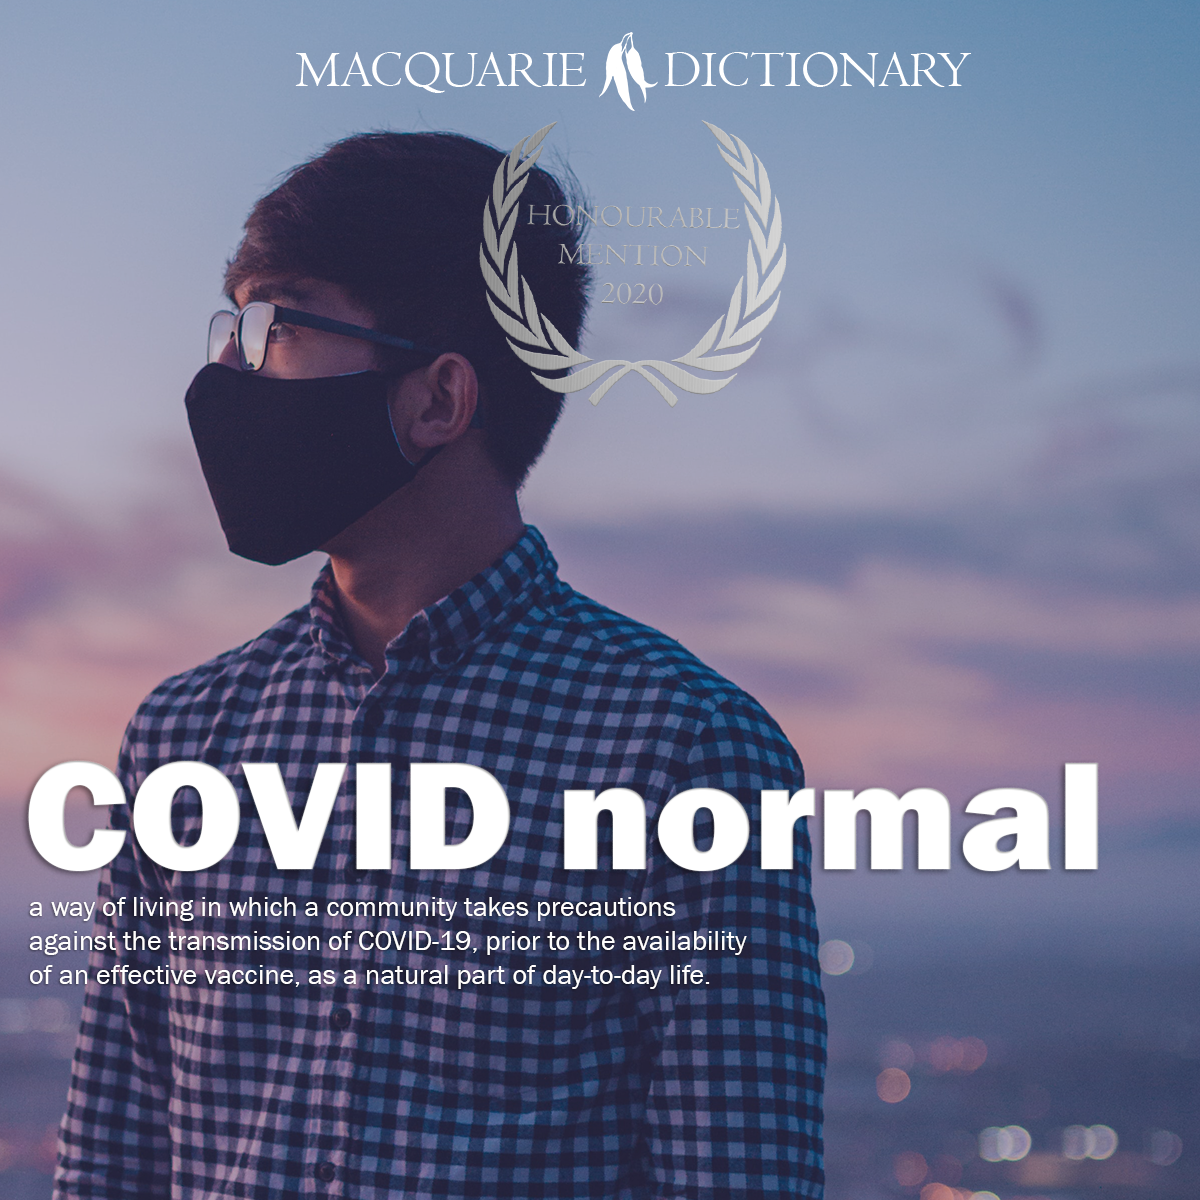 COVID normal - a way of living in which a community takes precautions against the transmission of COVID-19, prior to the availability of an effective vaccine, as a natural part of day-to-day life.